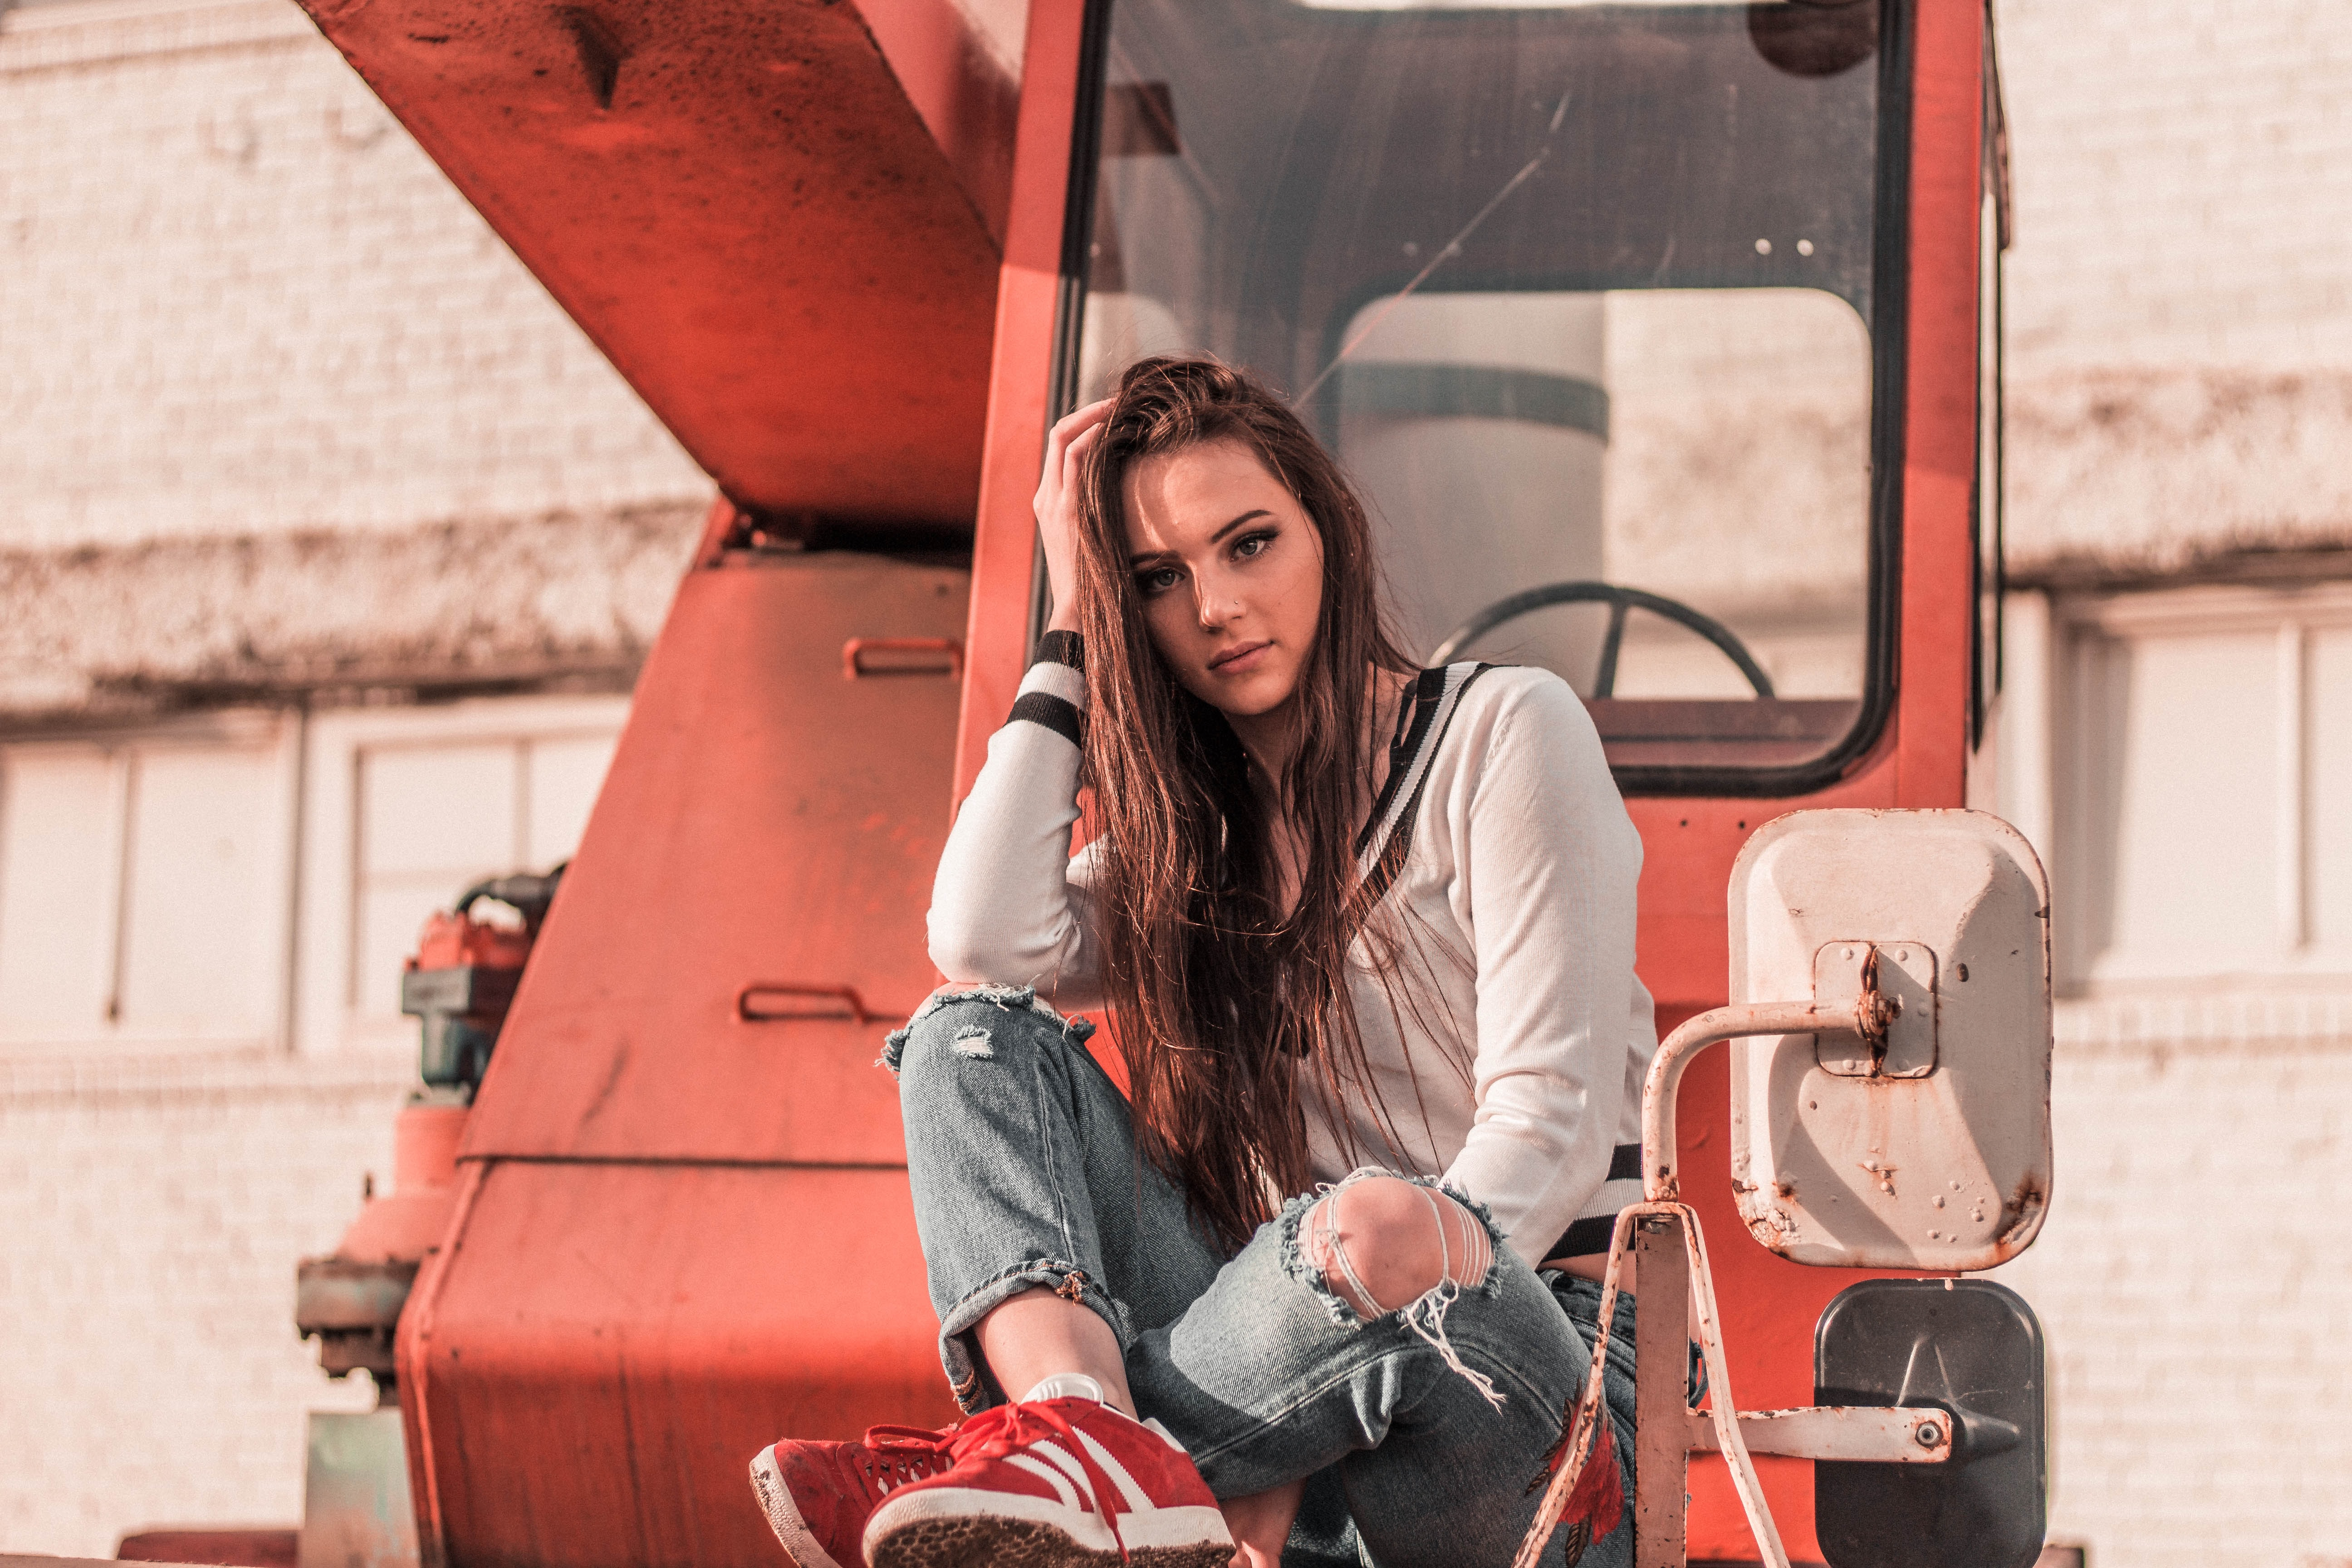 woman sitting in front of red heavy equipment while resting her hand on head